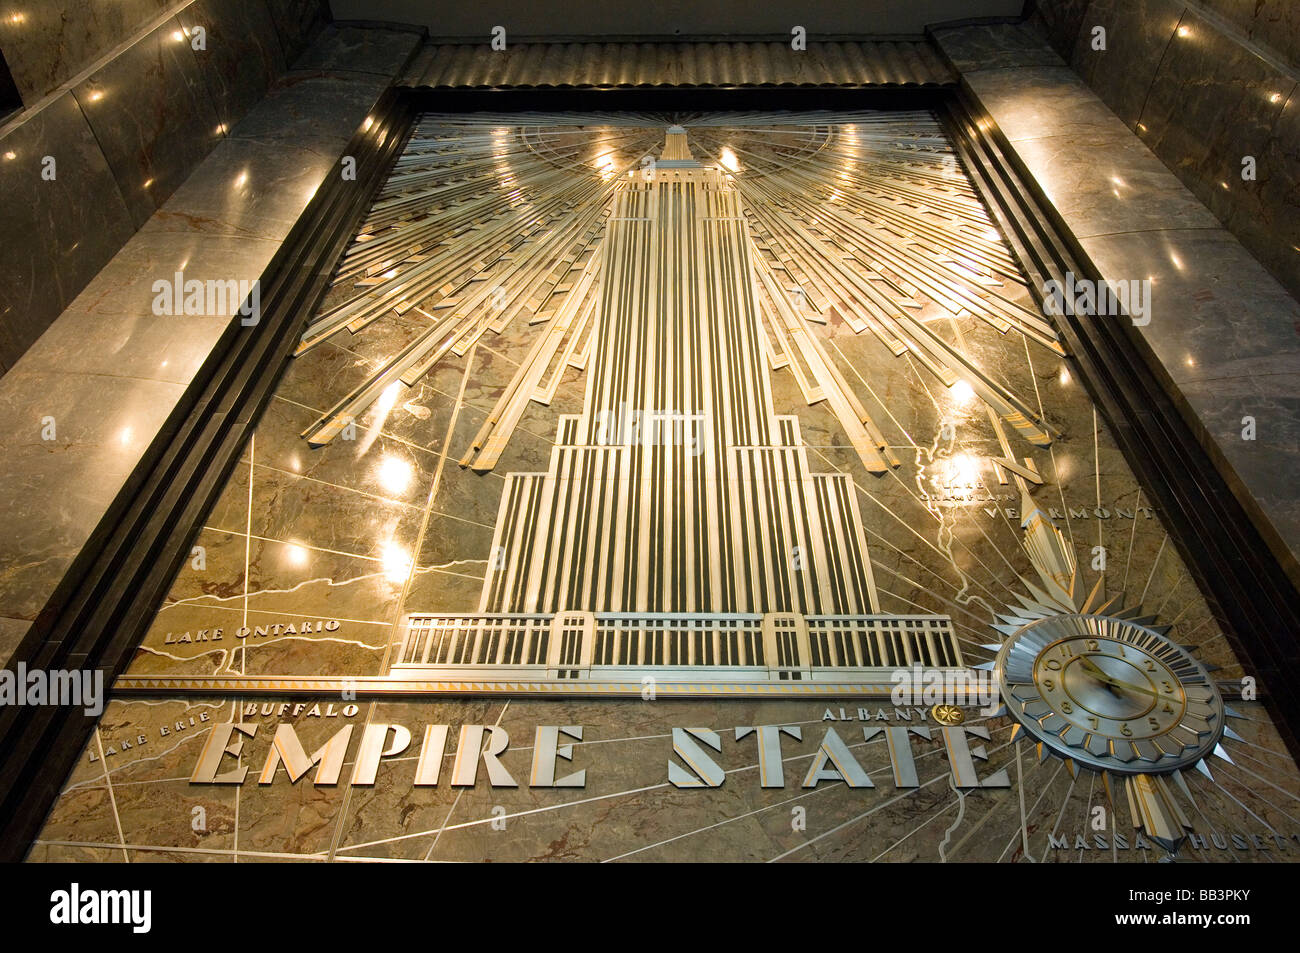 art deco lobby of the empire state building in manhattan new york stock photo 24055247 alamy. Black Bedroom Furniture Sets. Home Design Ideas